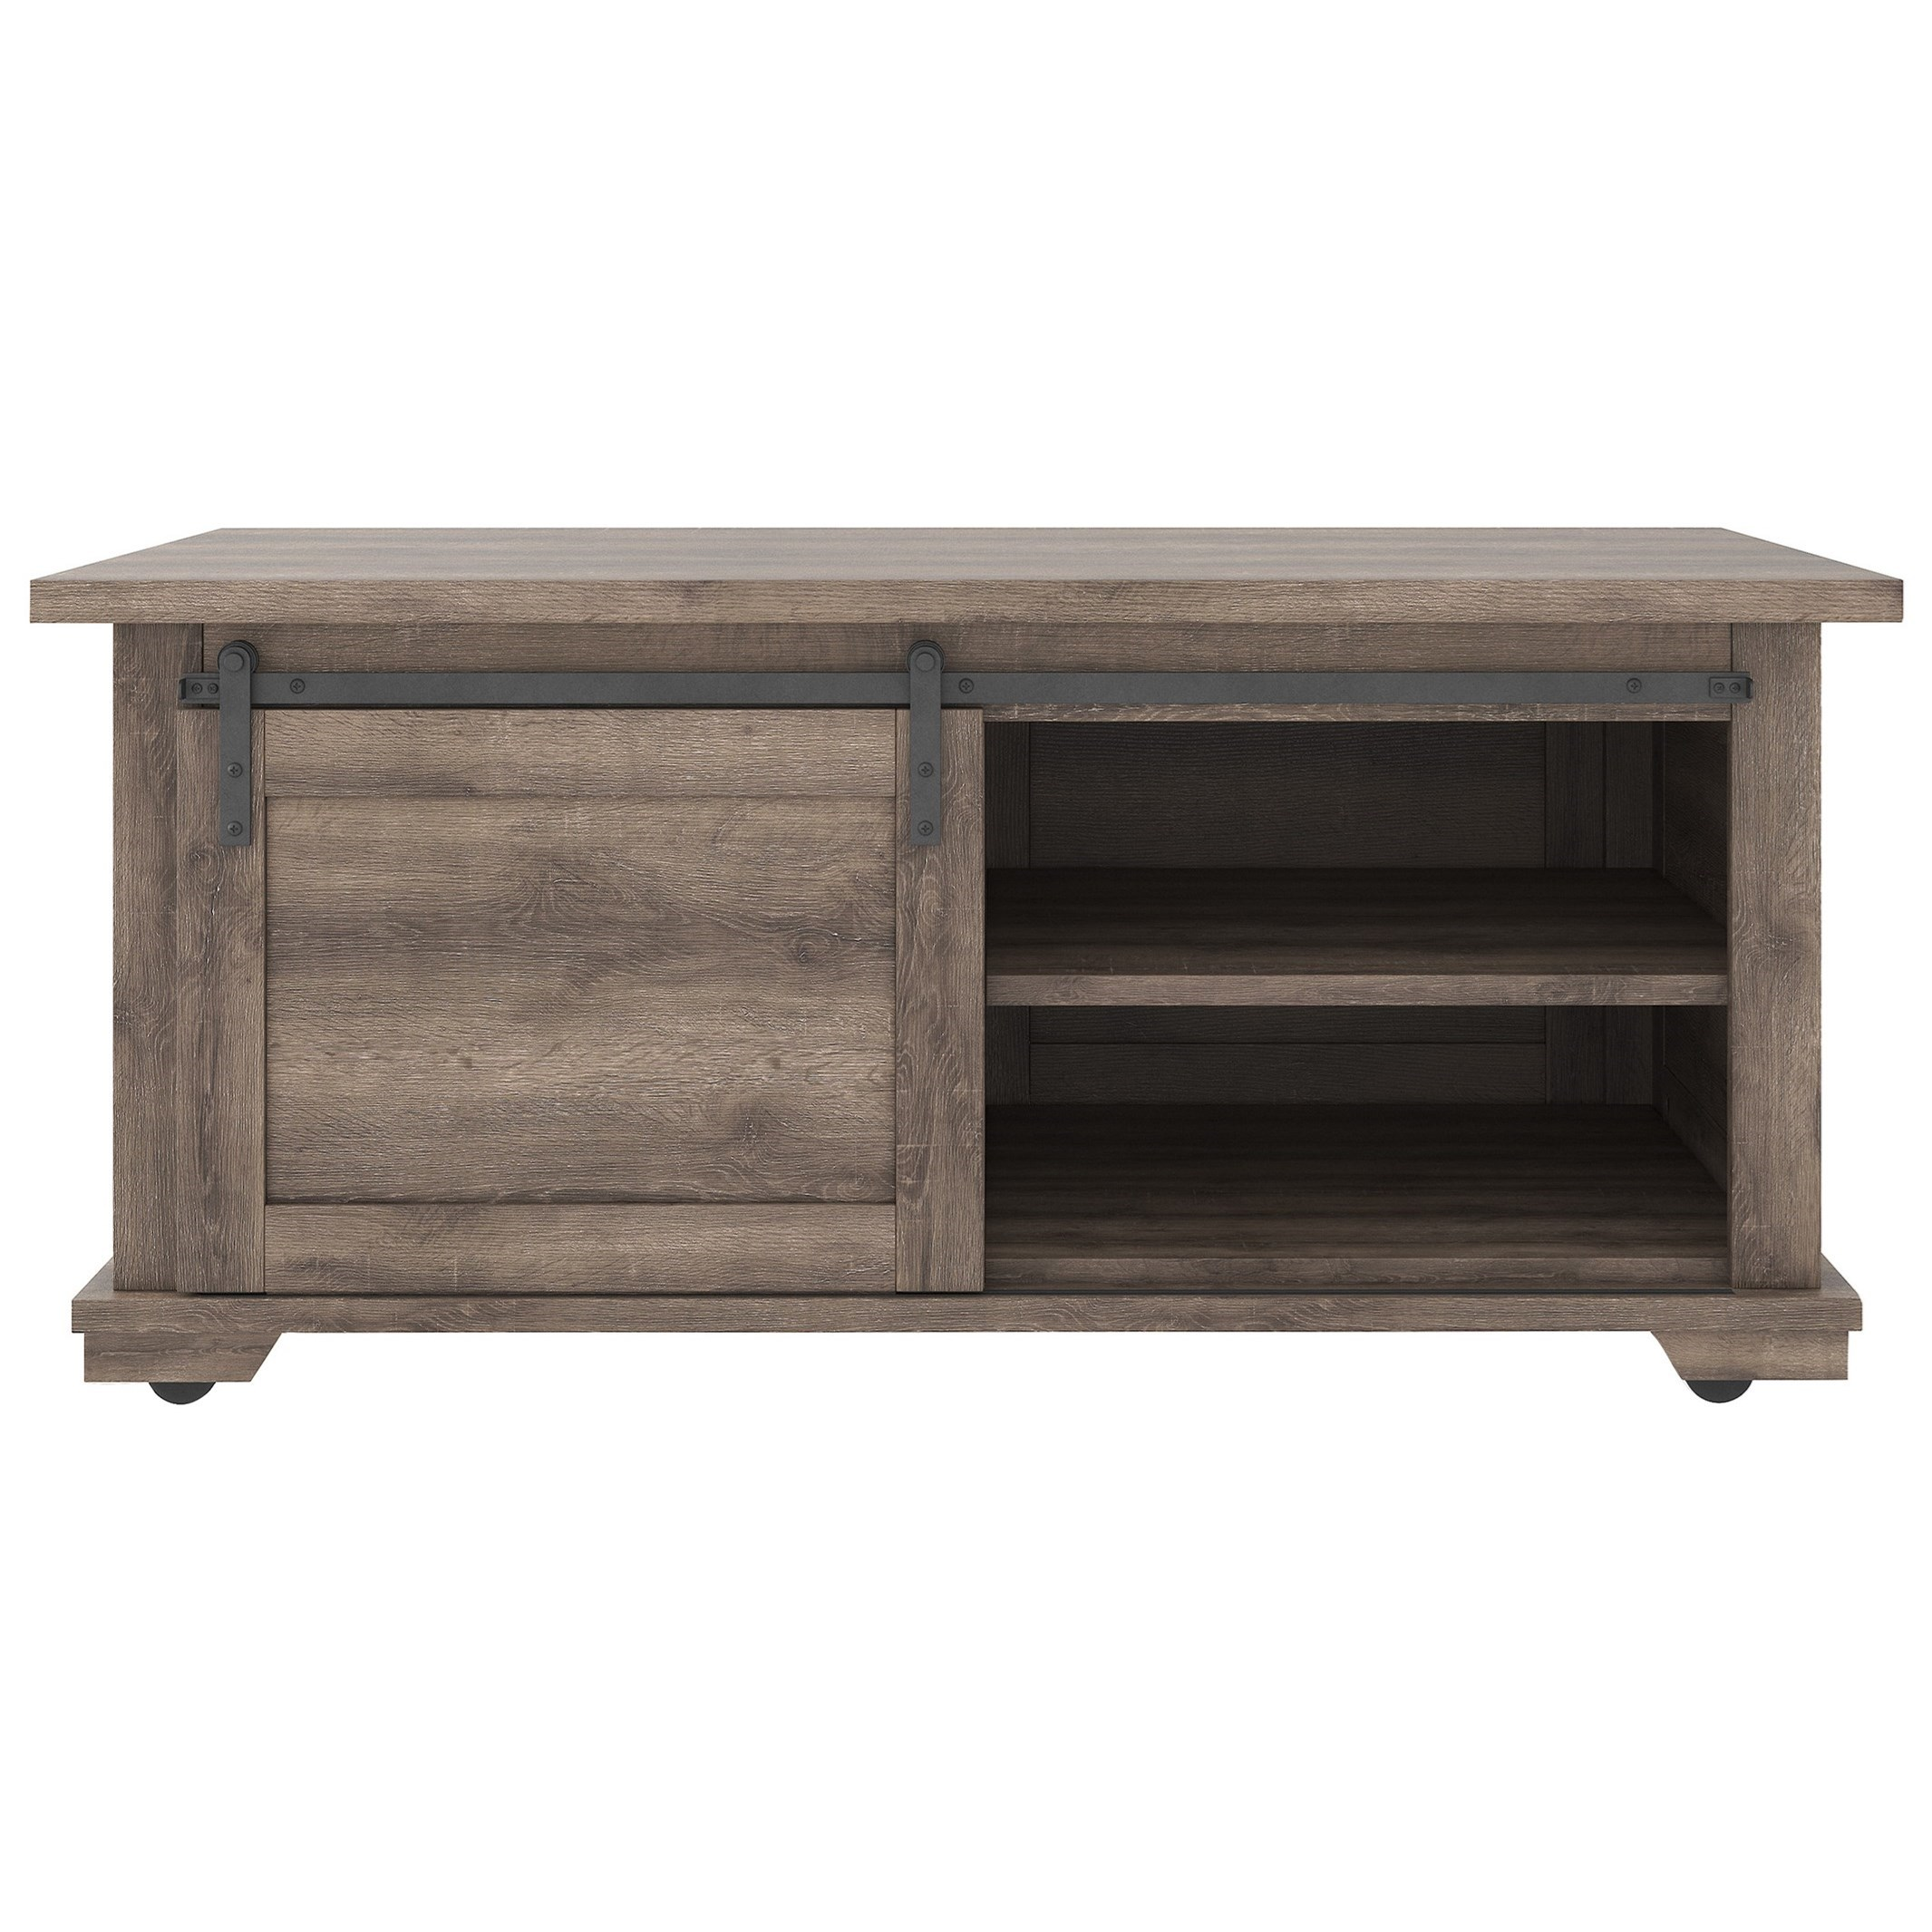 Arlenbry Rectangle Cocktail Table by Signature Design by Ashley at Zak's Warehouse Clearance Center